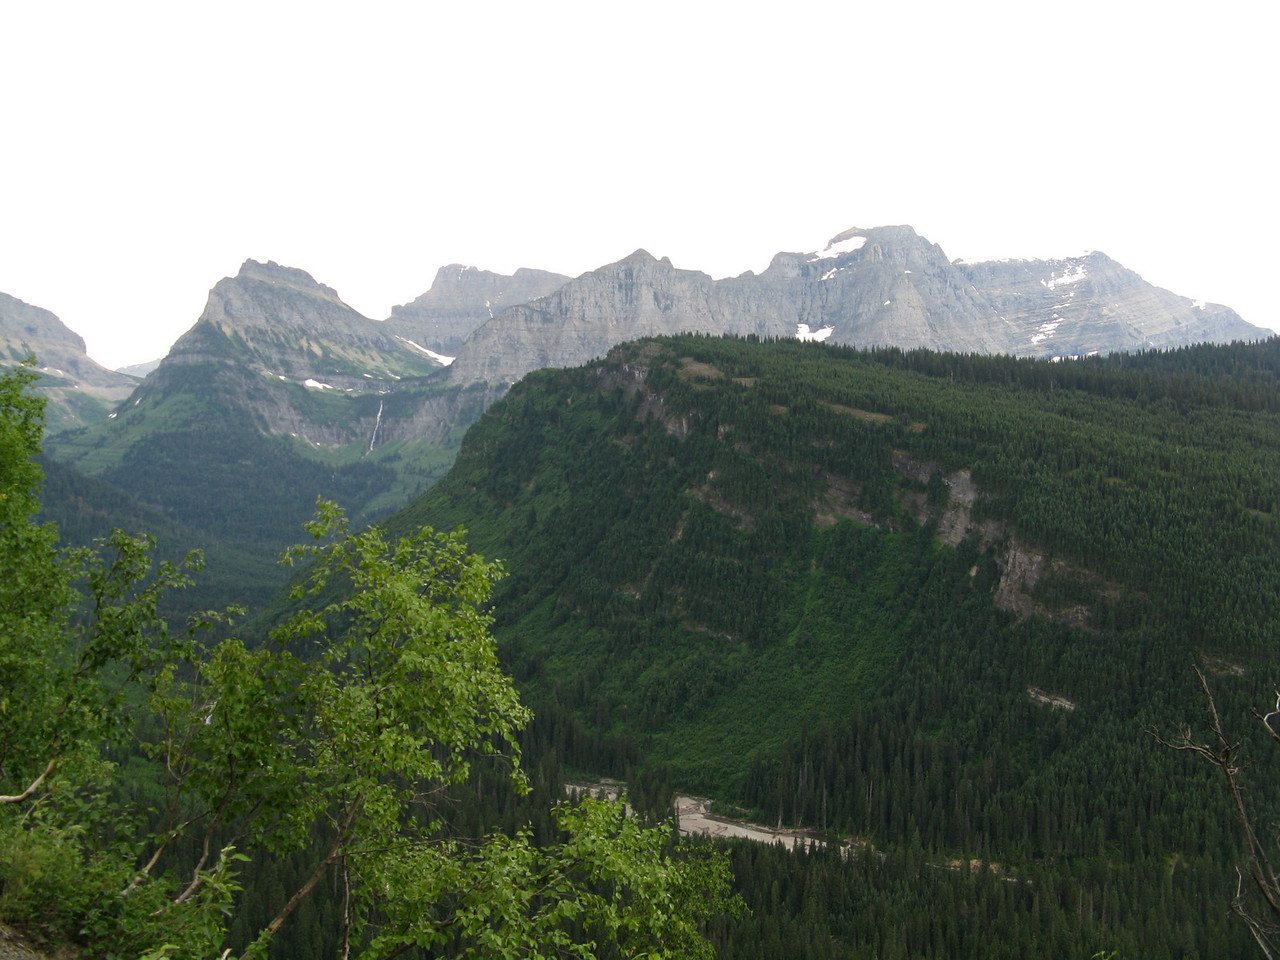 Looking a little more south from the prior image, Logan Pass is now on the left side of the picture.